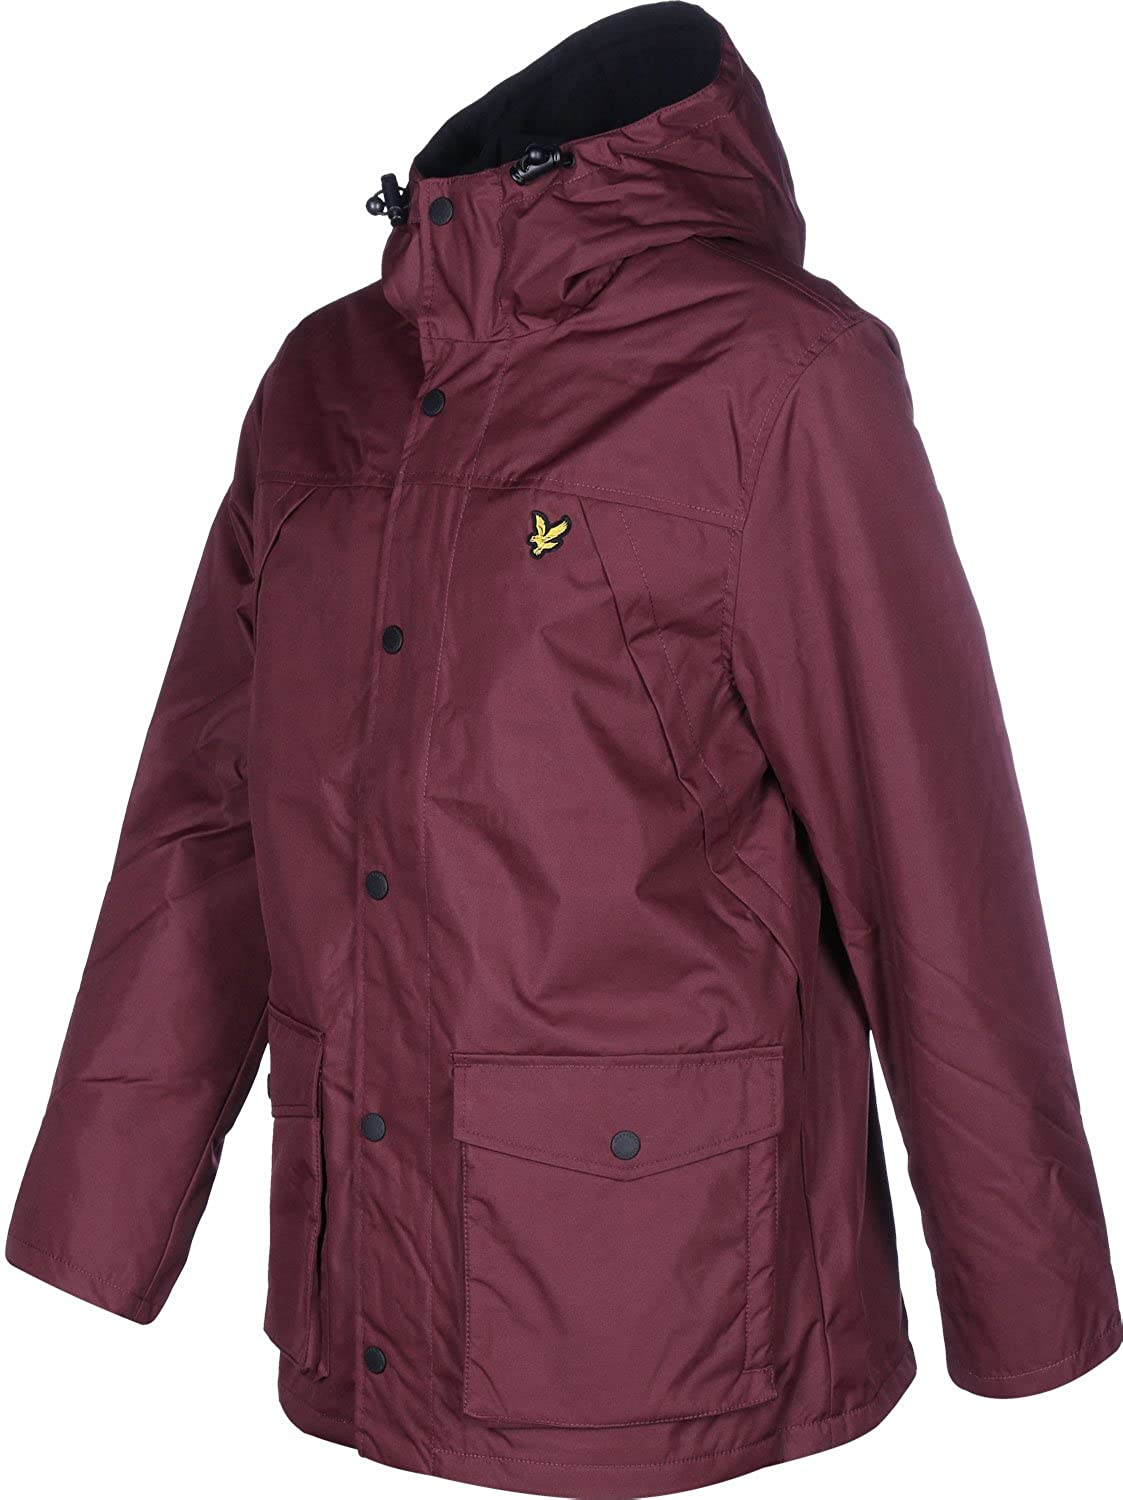 Lyle & Scott Micro Fleece Lined Mens Jacket at Amazon Mens Clothing store: